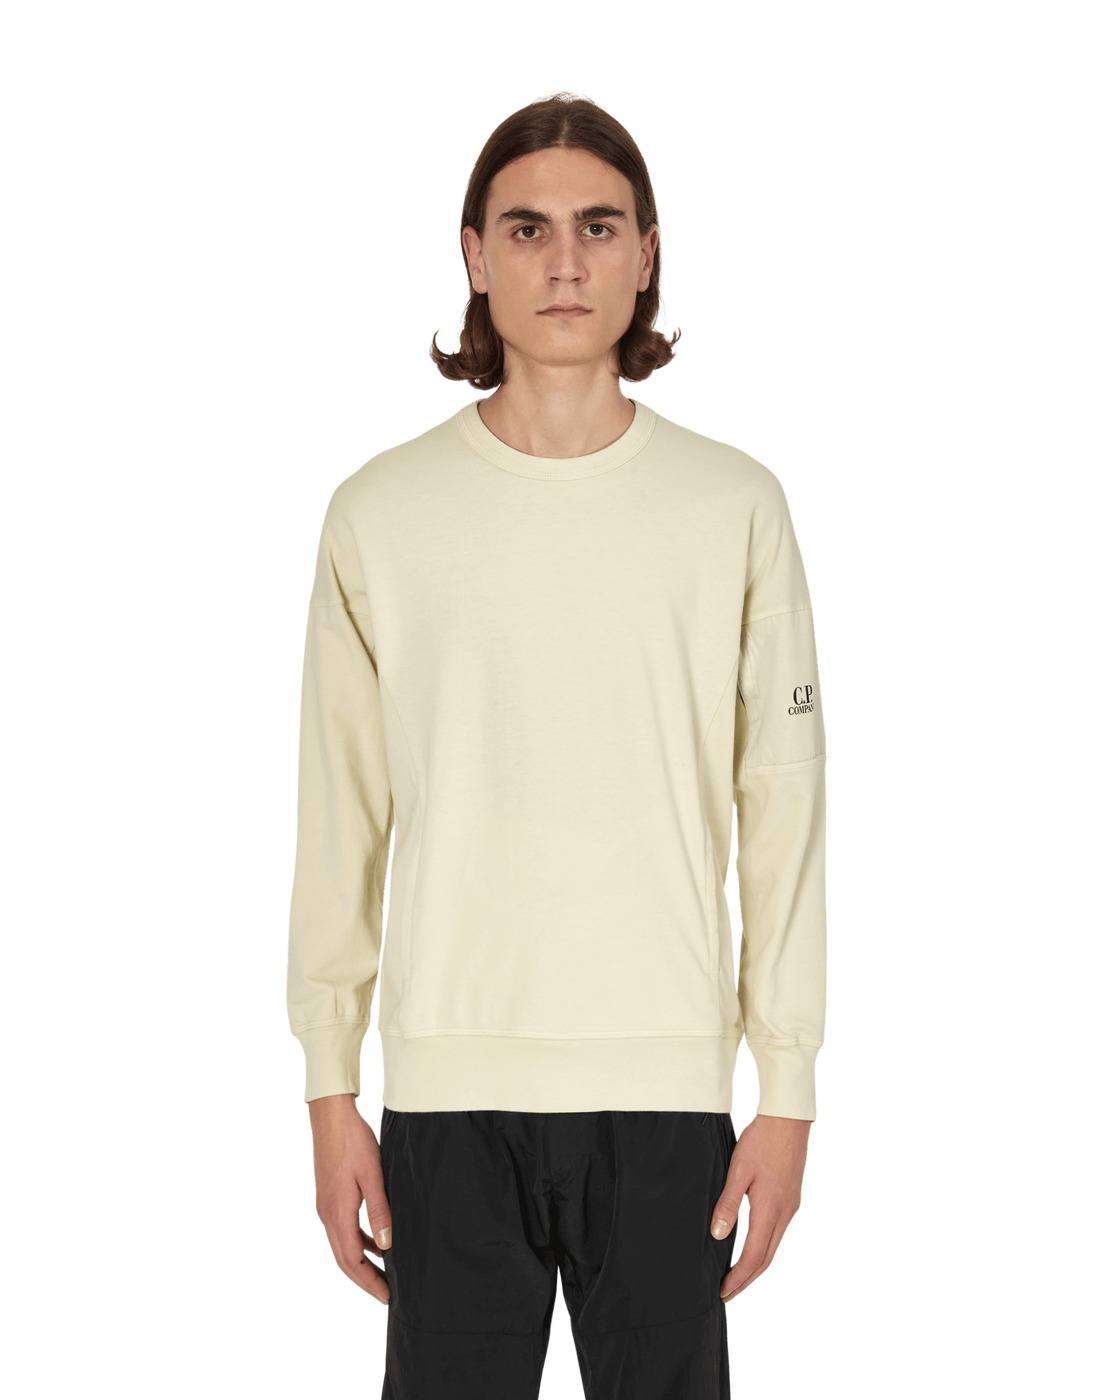 Photo: C.P. Company Crewneck Sweatshirt Oyster Grey